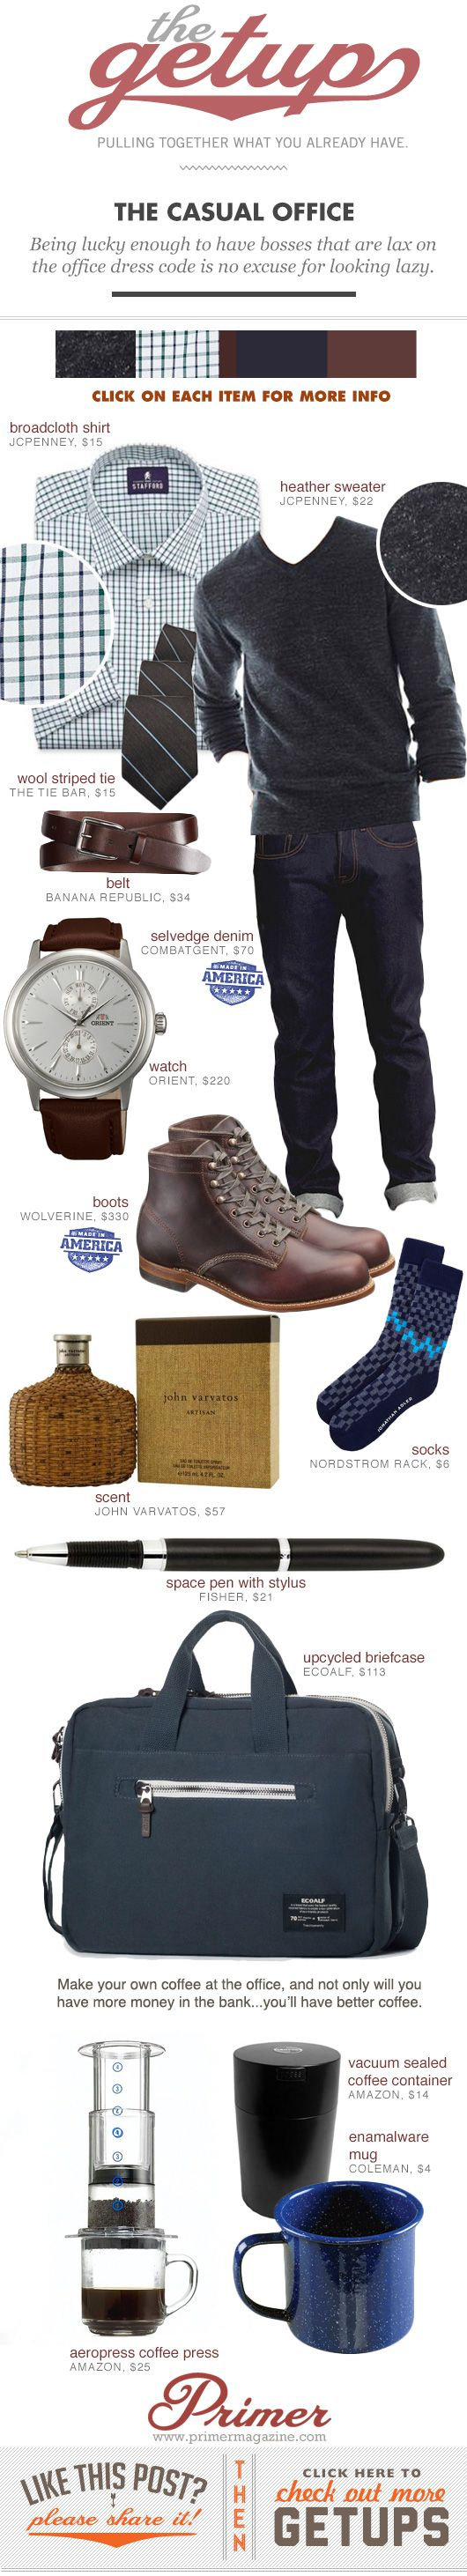 Fall Getup Week: The Casual Office - Primer